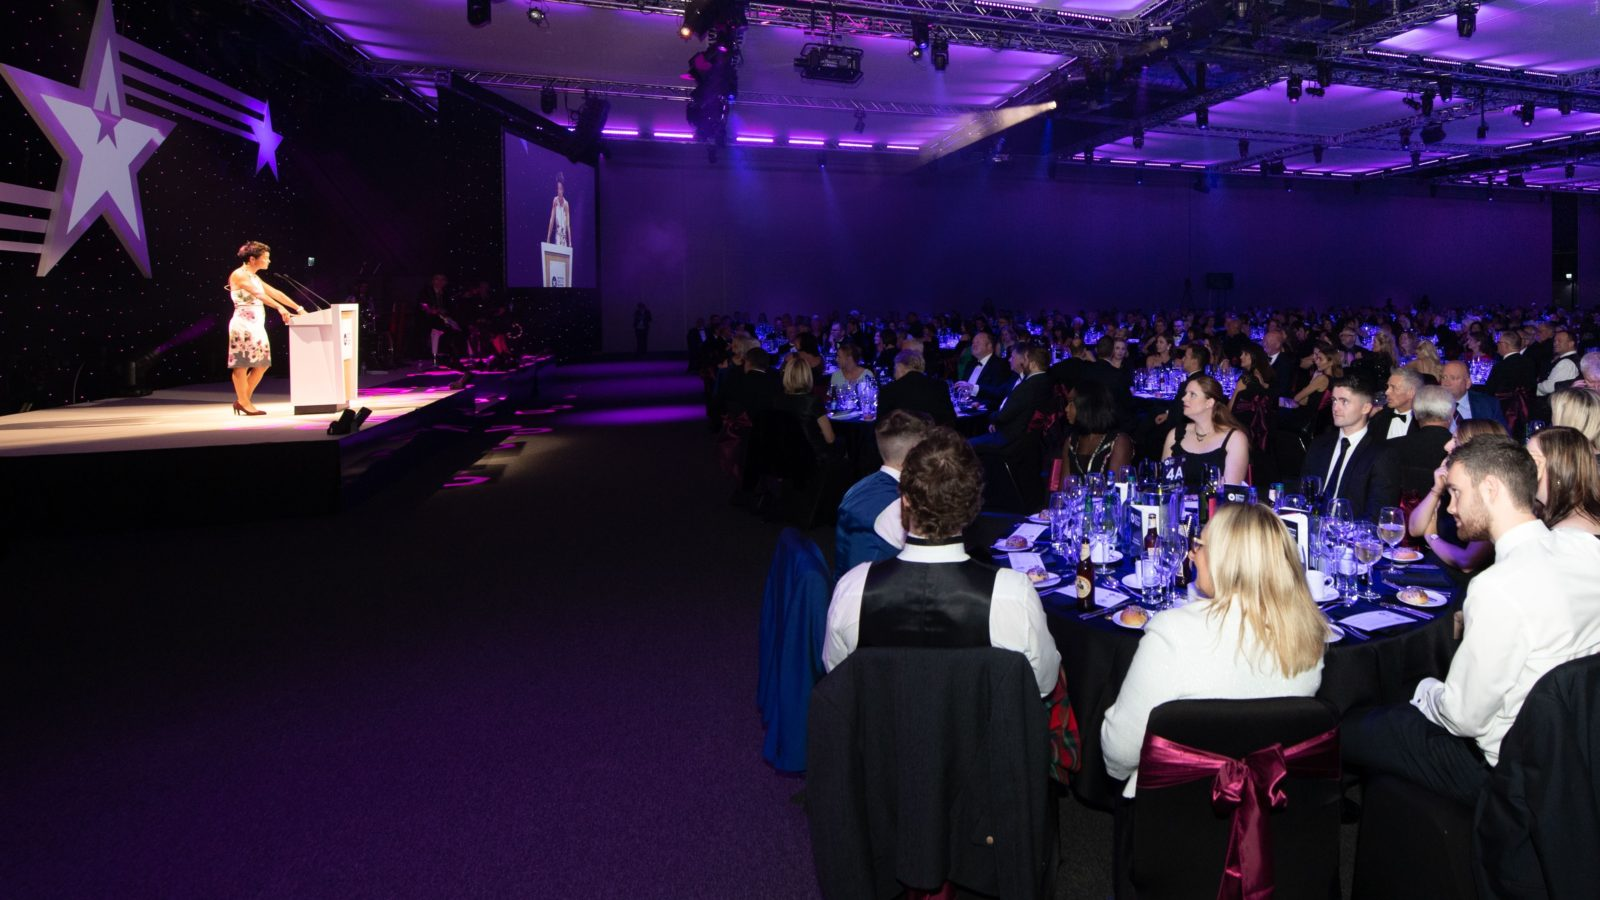 Northern Star Business Awards 2022: Meet our finalists, secure your table, find out which charities we are supporting - and much more. The countdown is on!